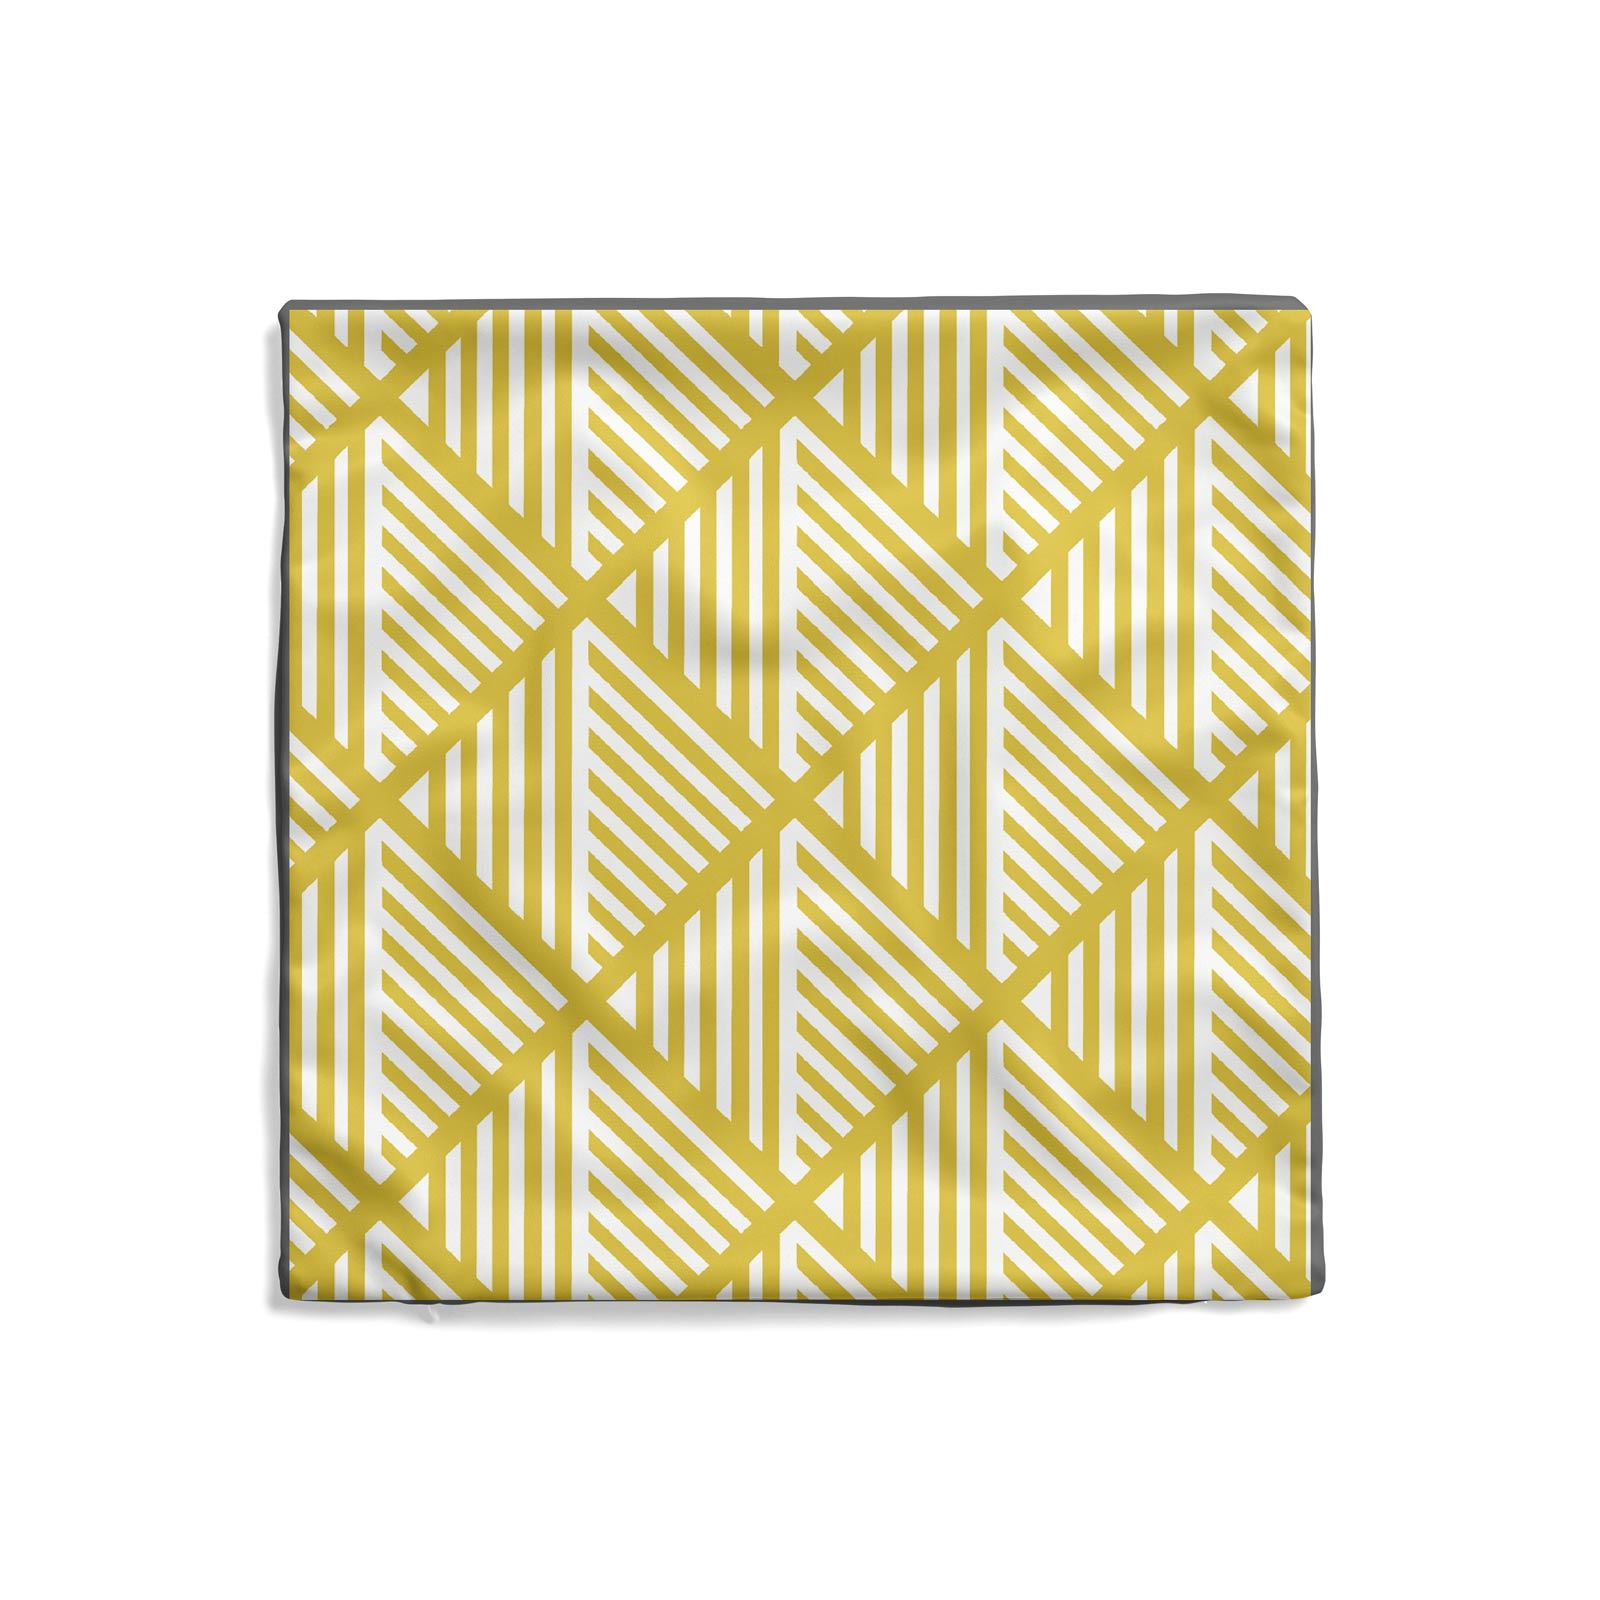 Grey-Ochre-Mustard-Cushion-Cover-Collection-17-034-18-034-Covers-Filled-Cushions thumbnail 40